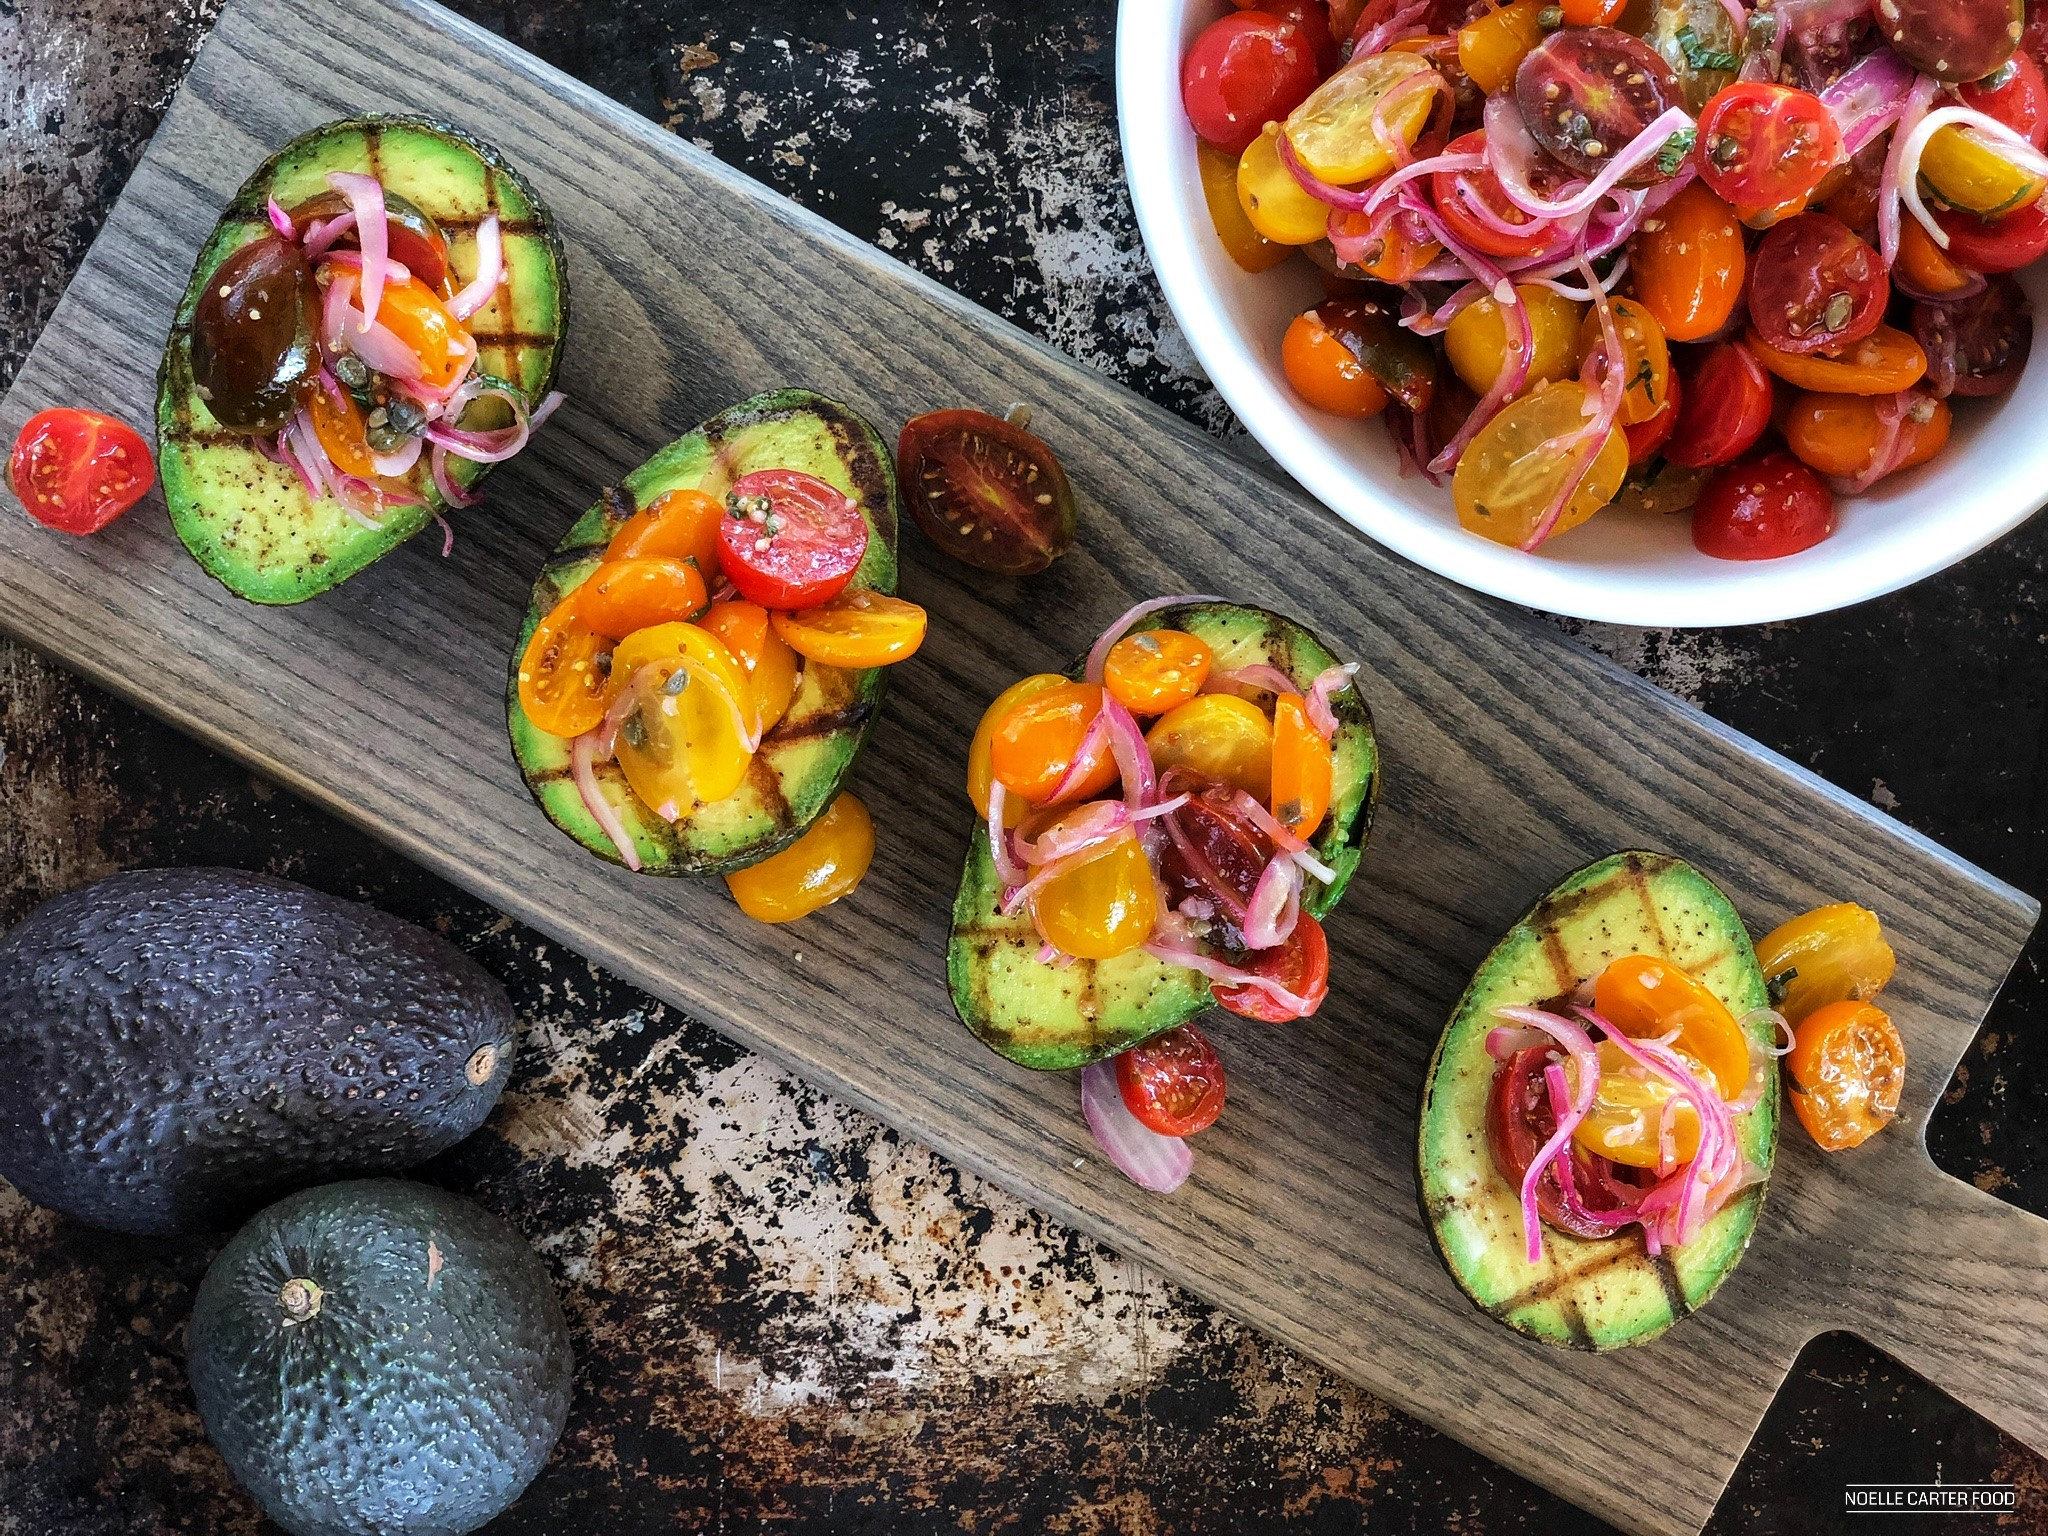 Grilled avocado with marinated tomato salad. (Noelle Carter)